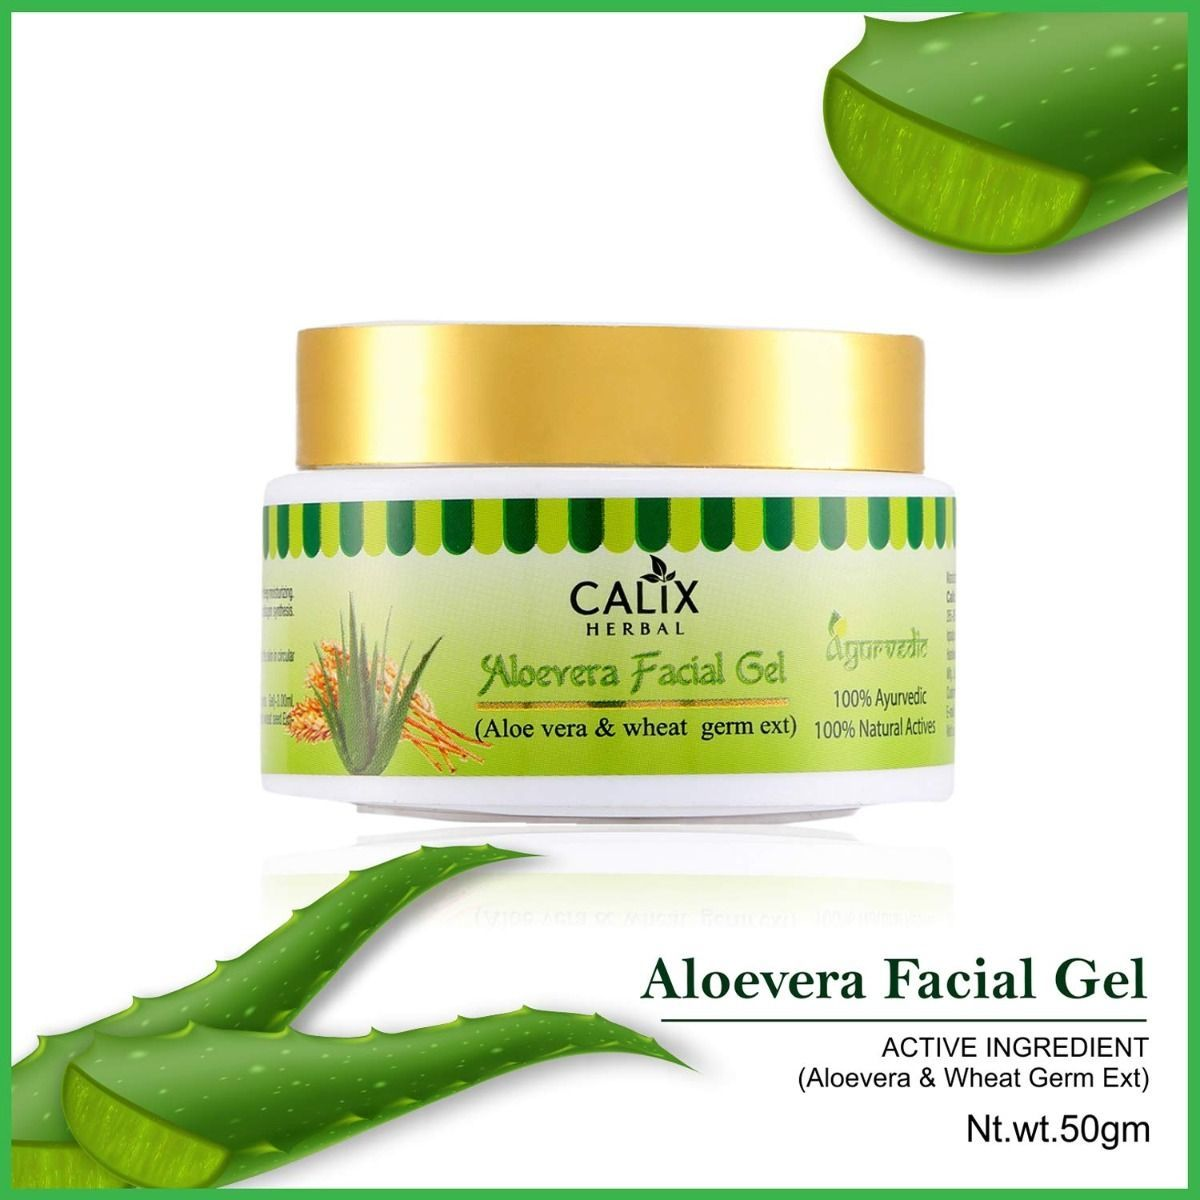 Aloevera Facial Gel